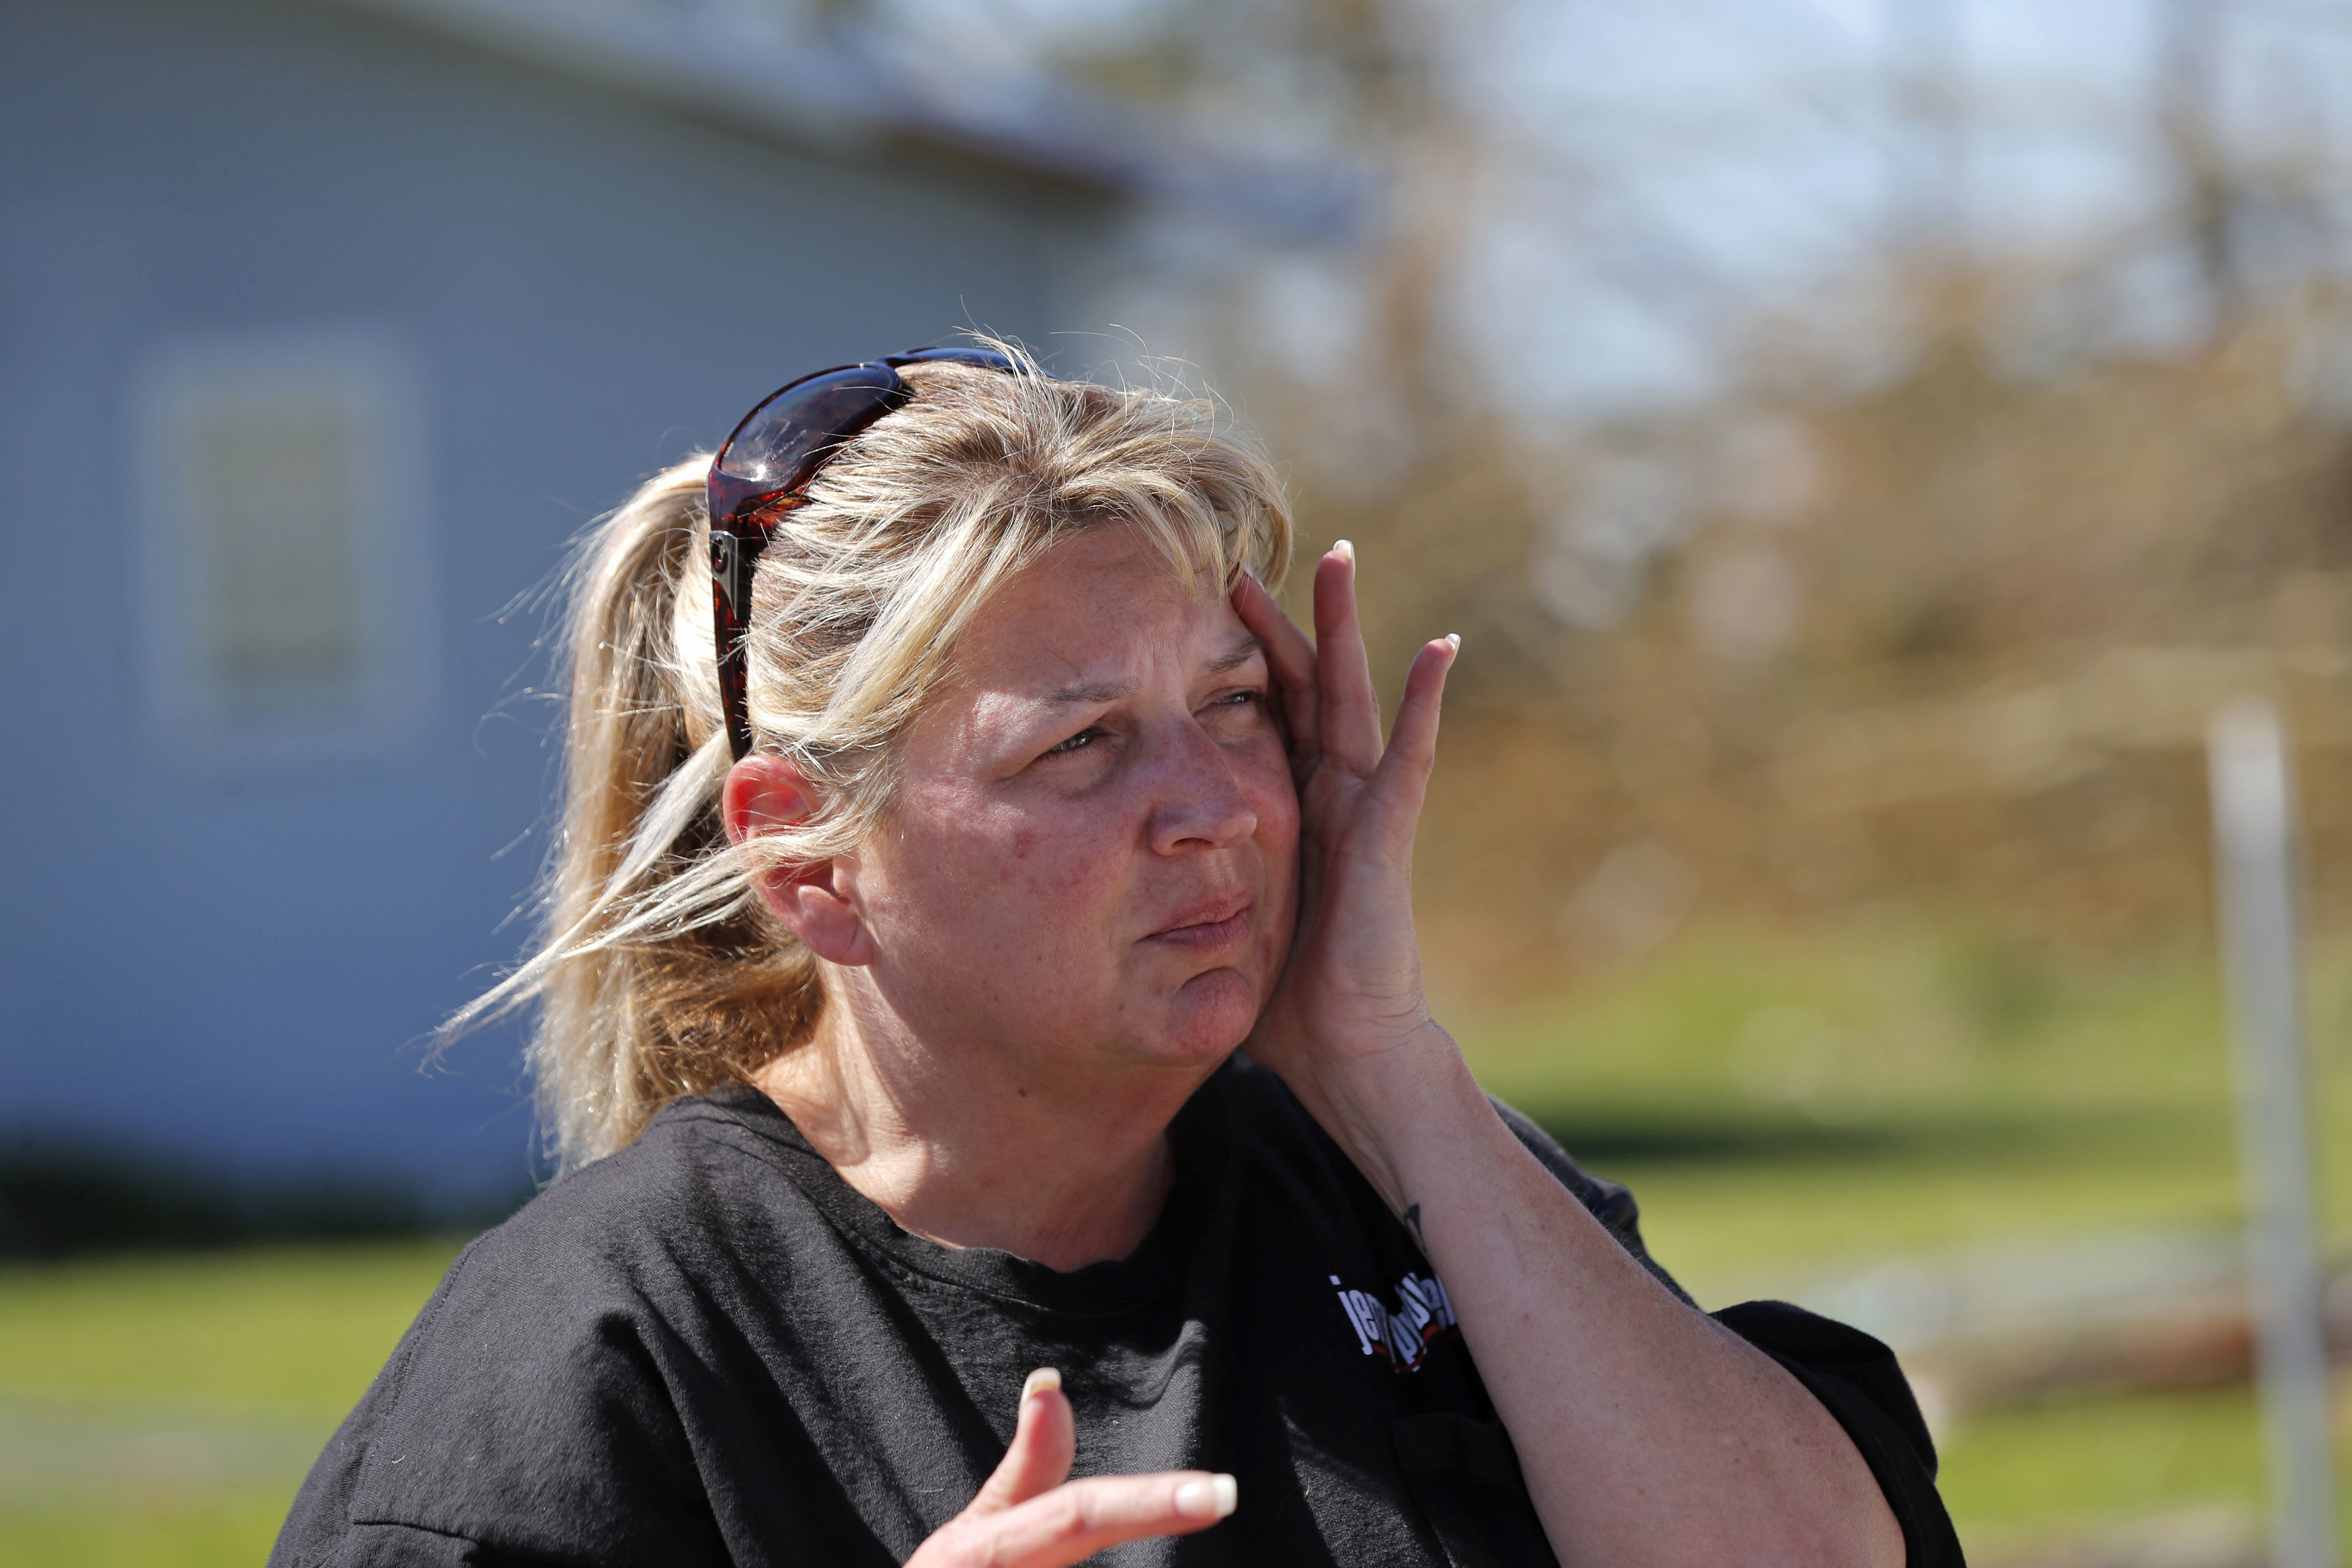 "In this Oct. 13, 2018 photo, Pam Rudd reacts as she helps her mother-in-law remove possessions from her damaged home in the aftermath of Hurricane Michael in Panama City, Fla. ""We're lucky that we at least have a place to stay,"" Rudd said. ""There are people walking up and down the road with backpacks and no place to go."" (AP Photo/Gerald Herbert)"